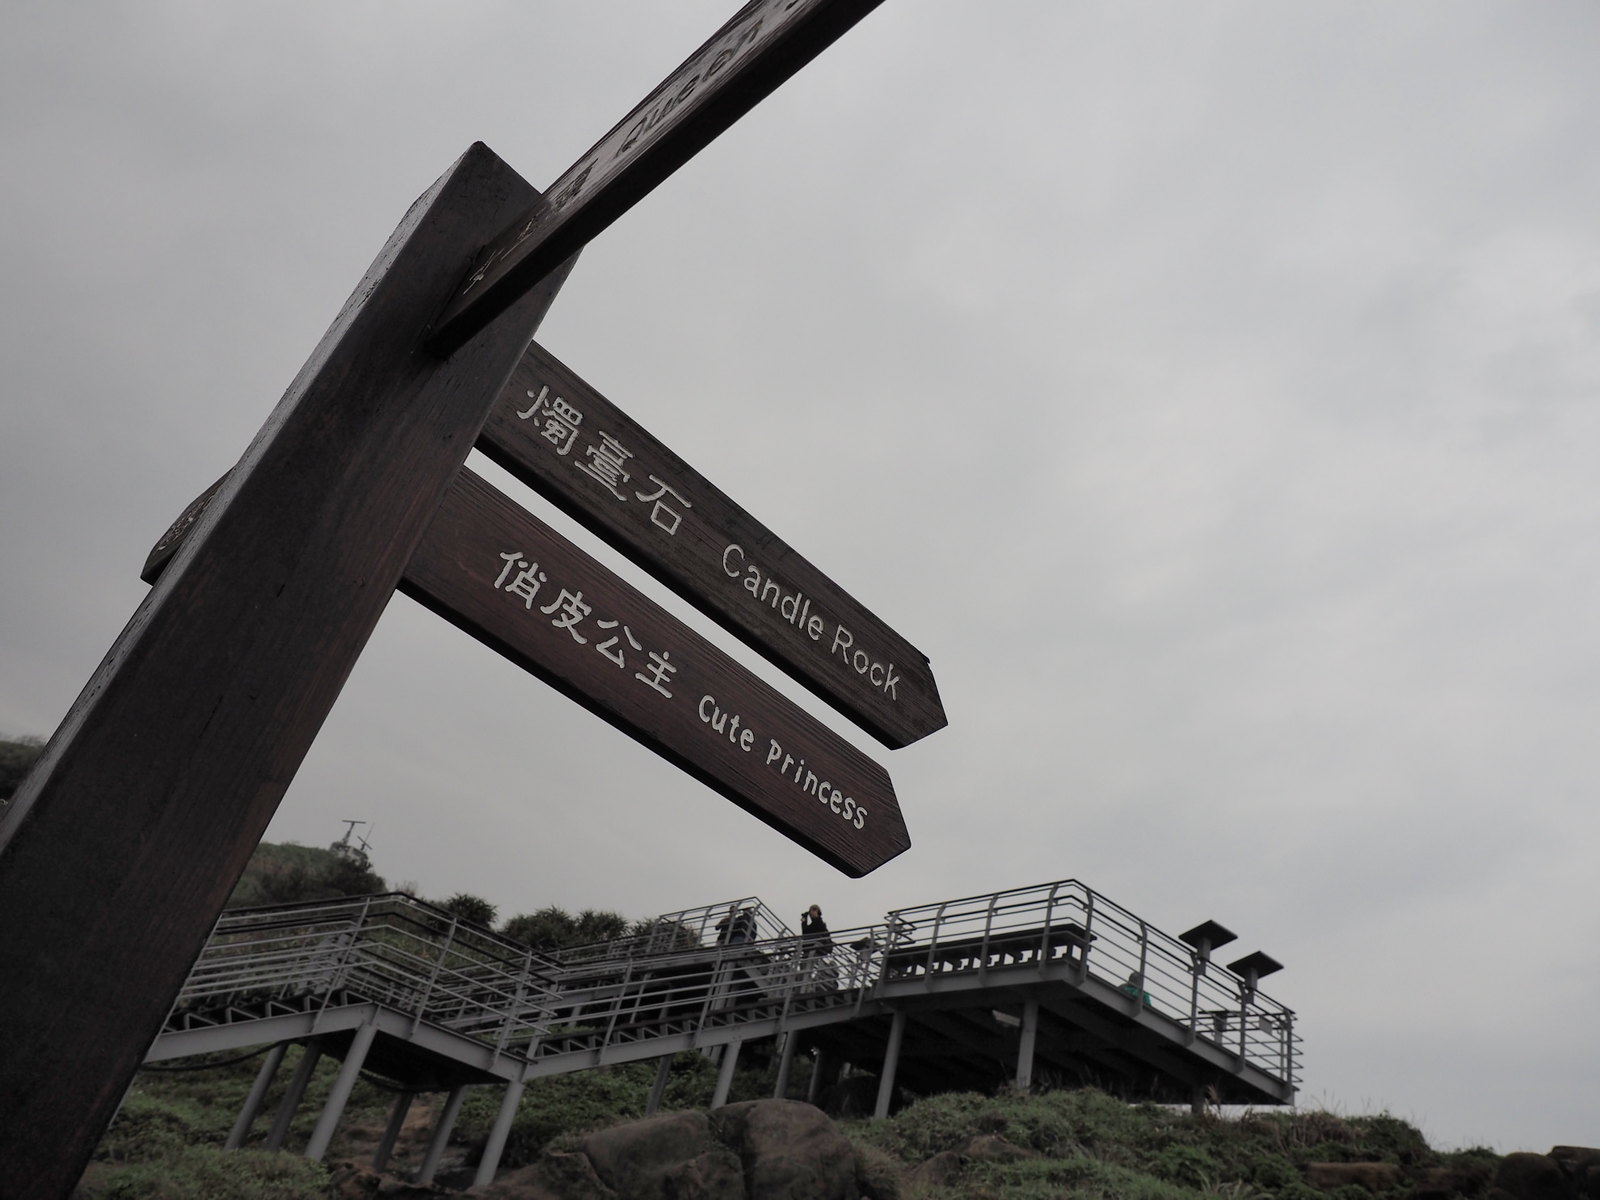 Unique names are given to the rock formation at Yehliu Geopark (野柳地質公園) such as Candle Rock and Cute Princess